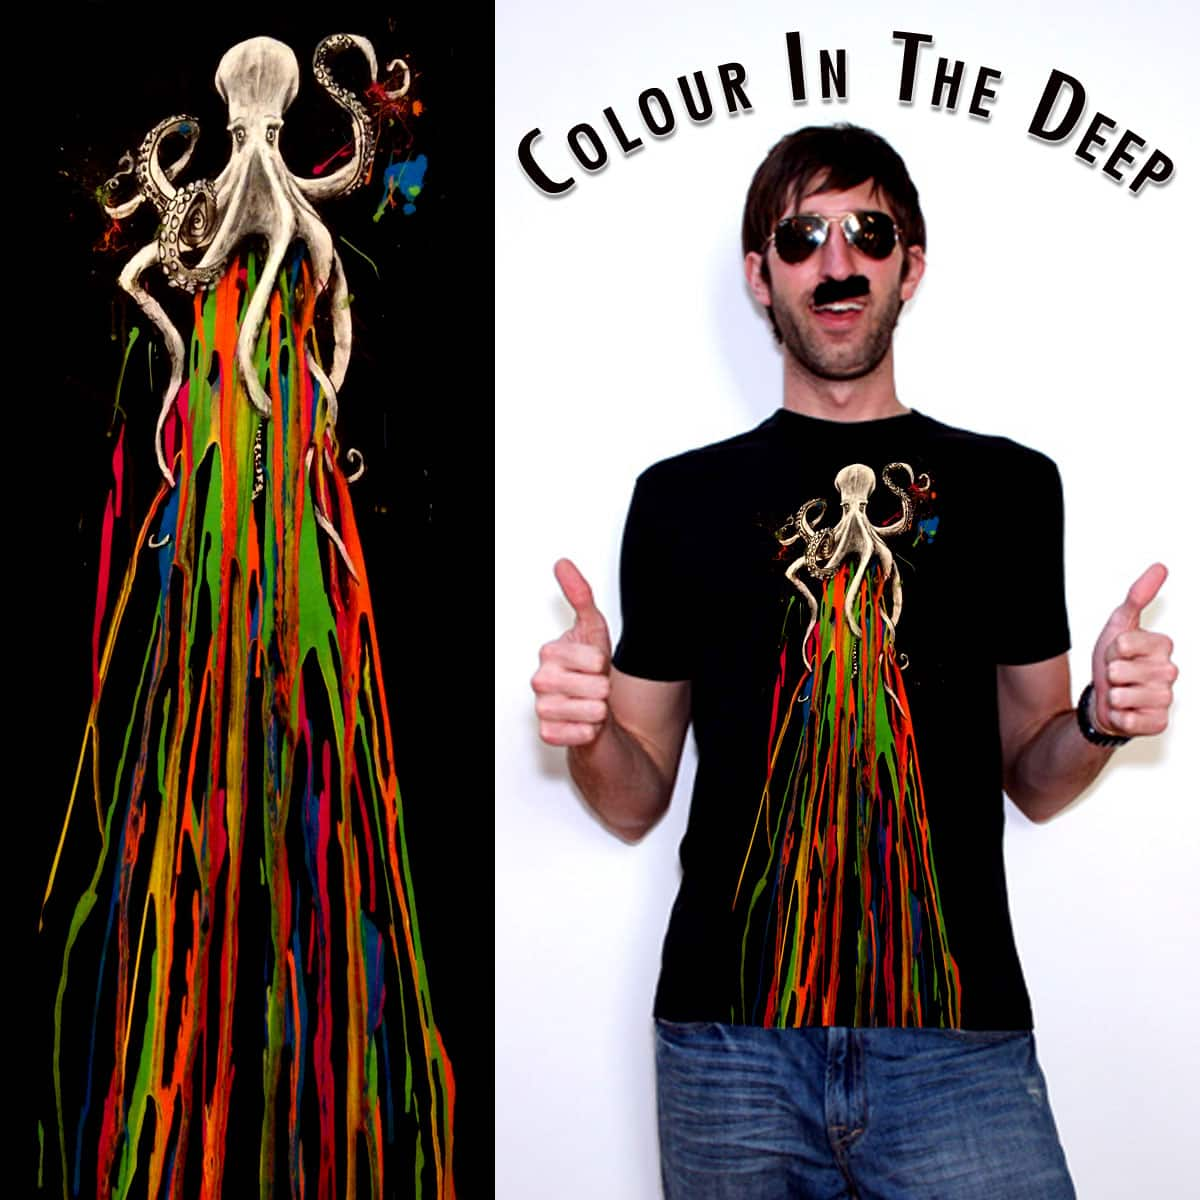 Colour In The Deep by AdamBlakemore on Threadless